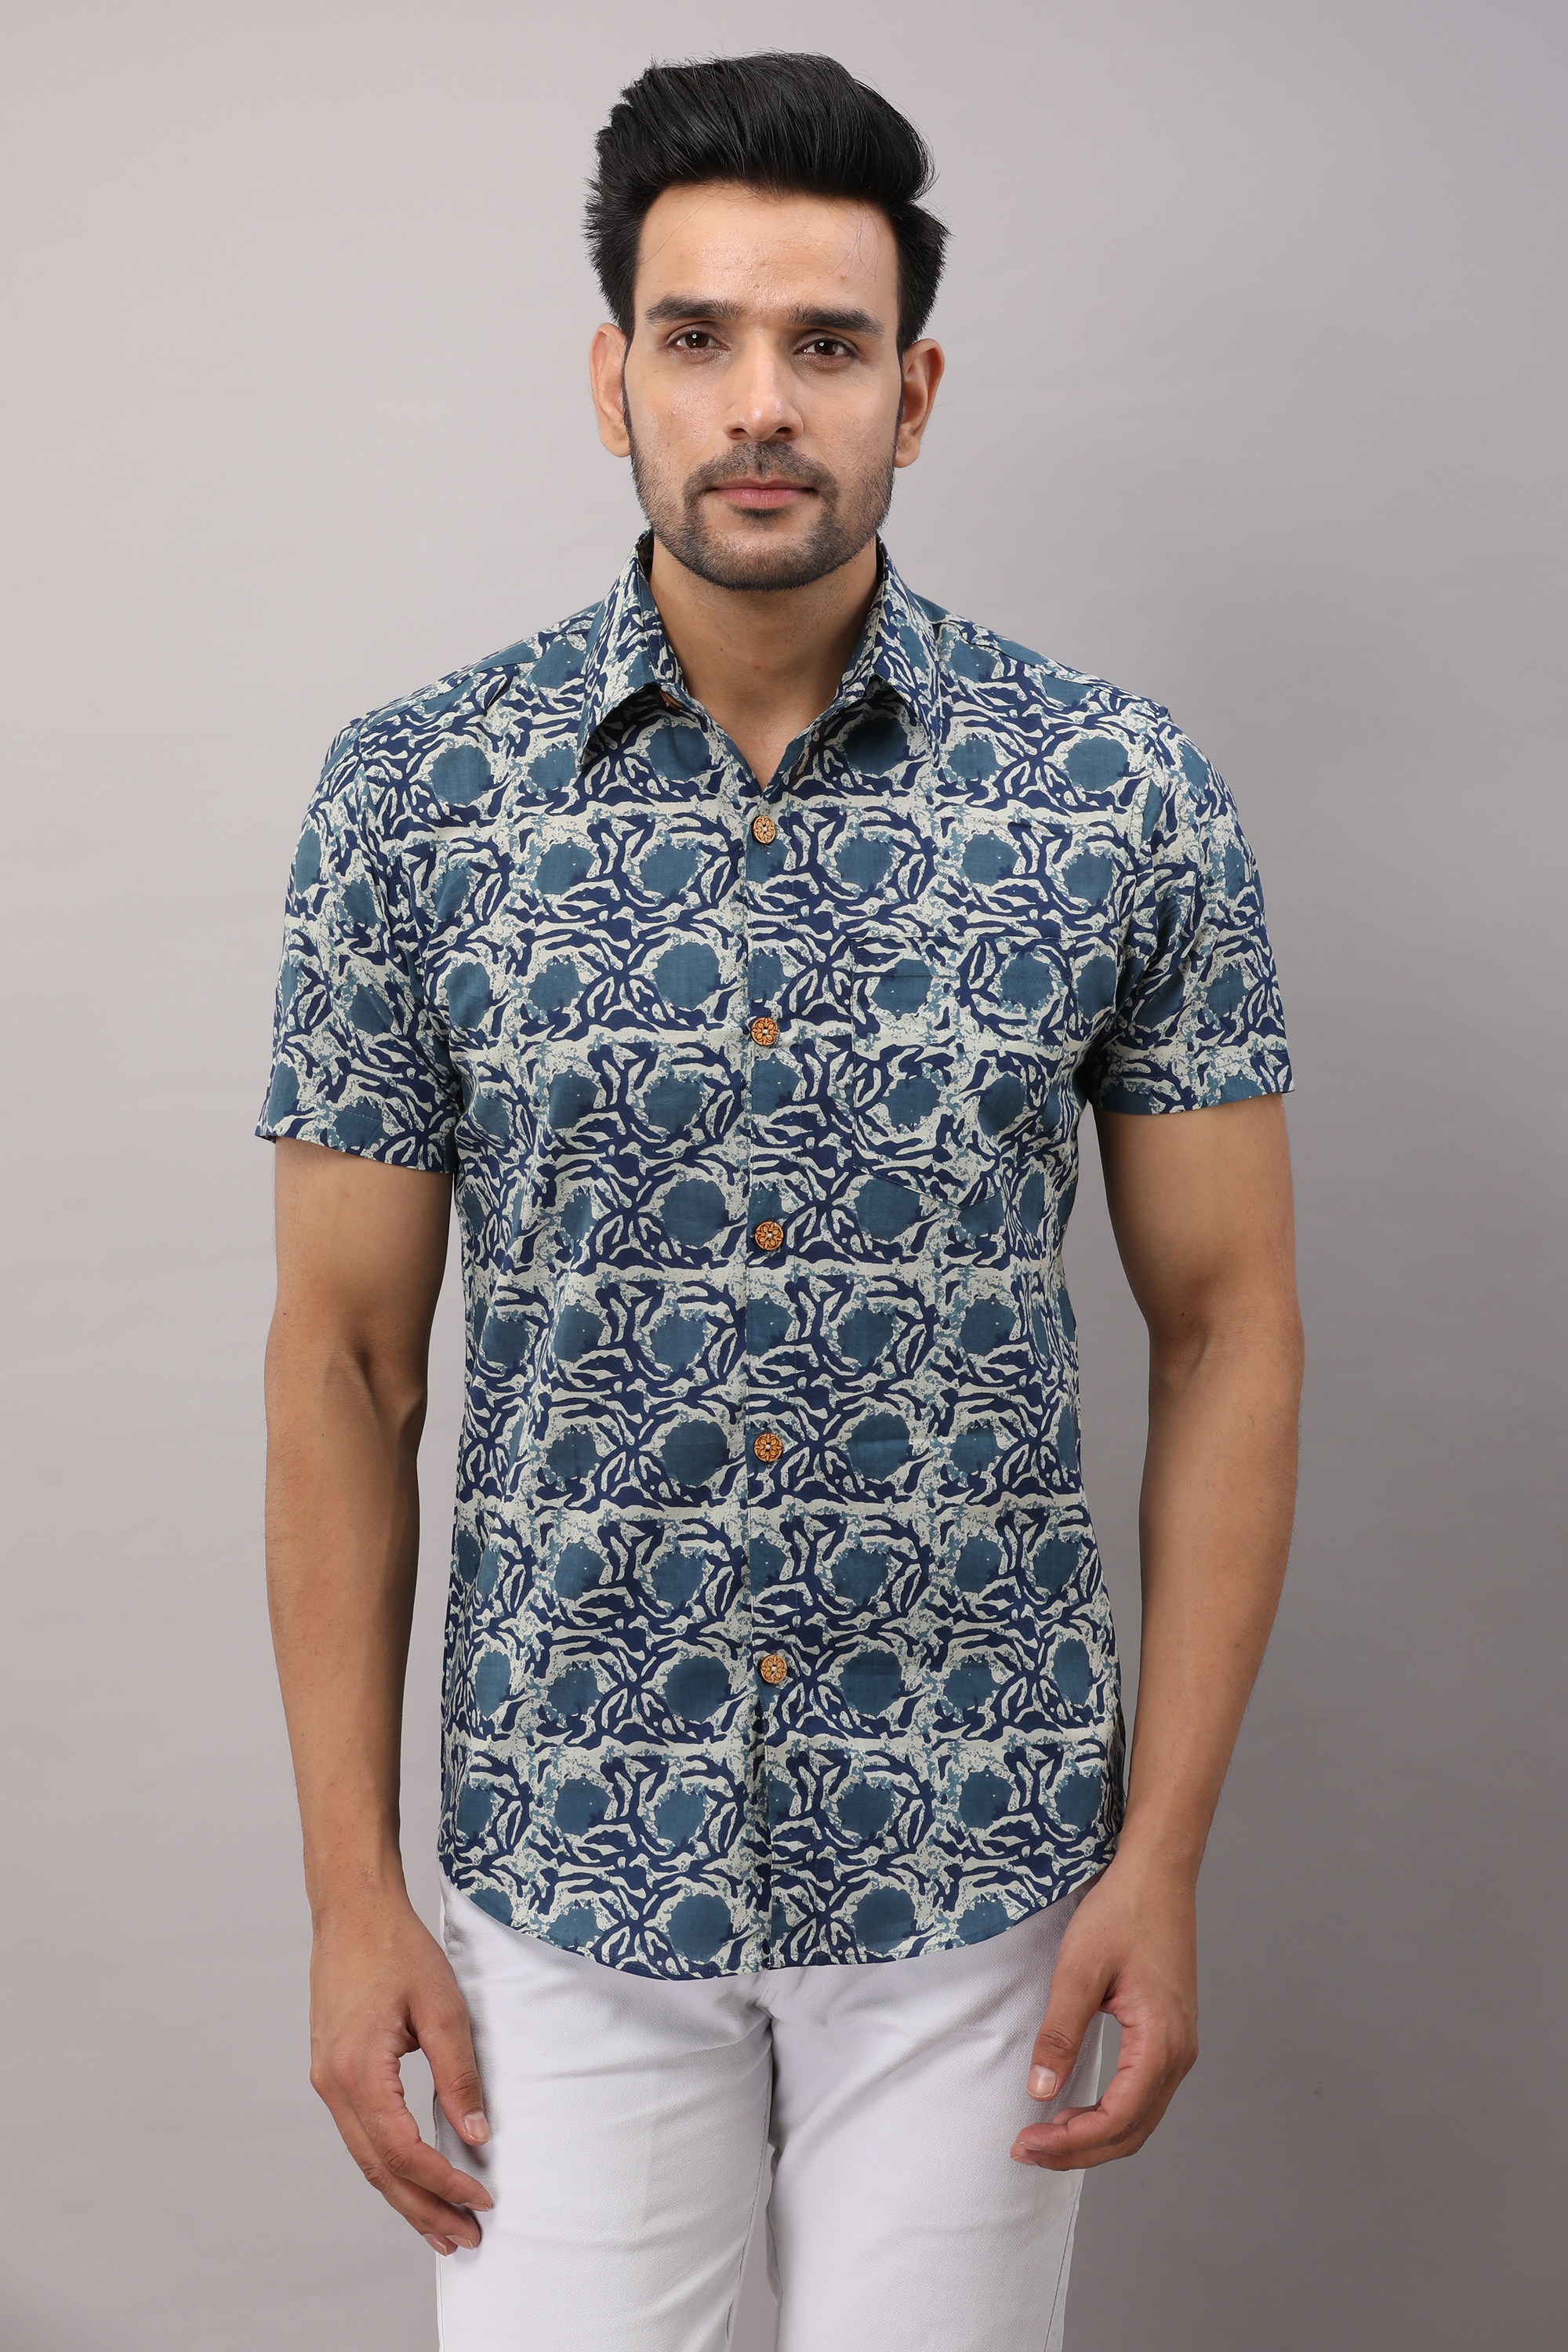 FrionKandy Cotton Floral Casual Blue Regular Shirt For Men - S